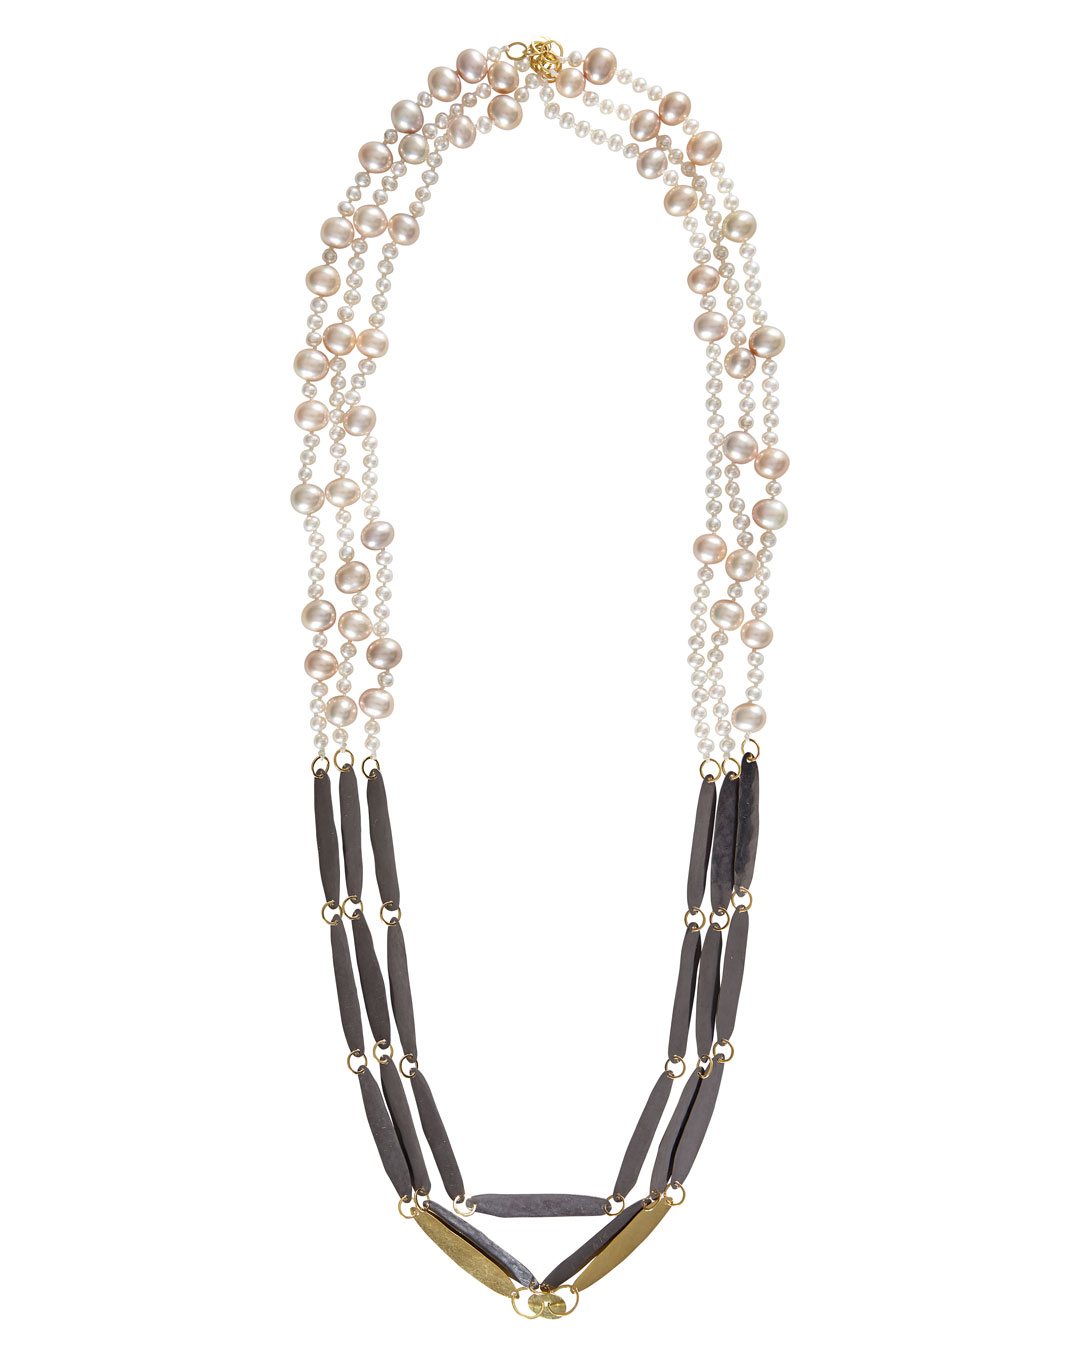 Annelies Planteijdt,  Necklace with Egg no.23 and Lime, 2018, necklace; 18ct gold, tantalium, freshwater pearls, 150 x 350 mm, €7450 (image 1/2)